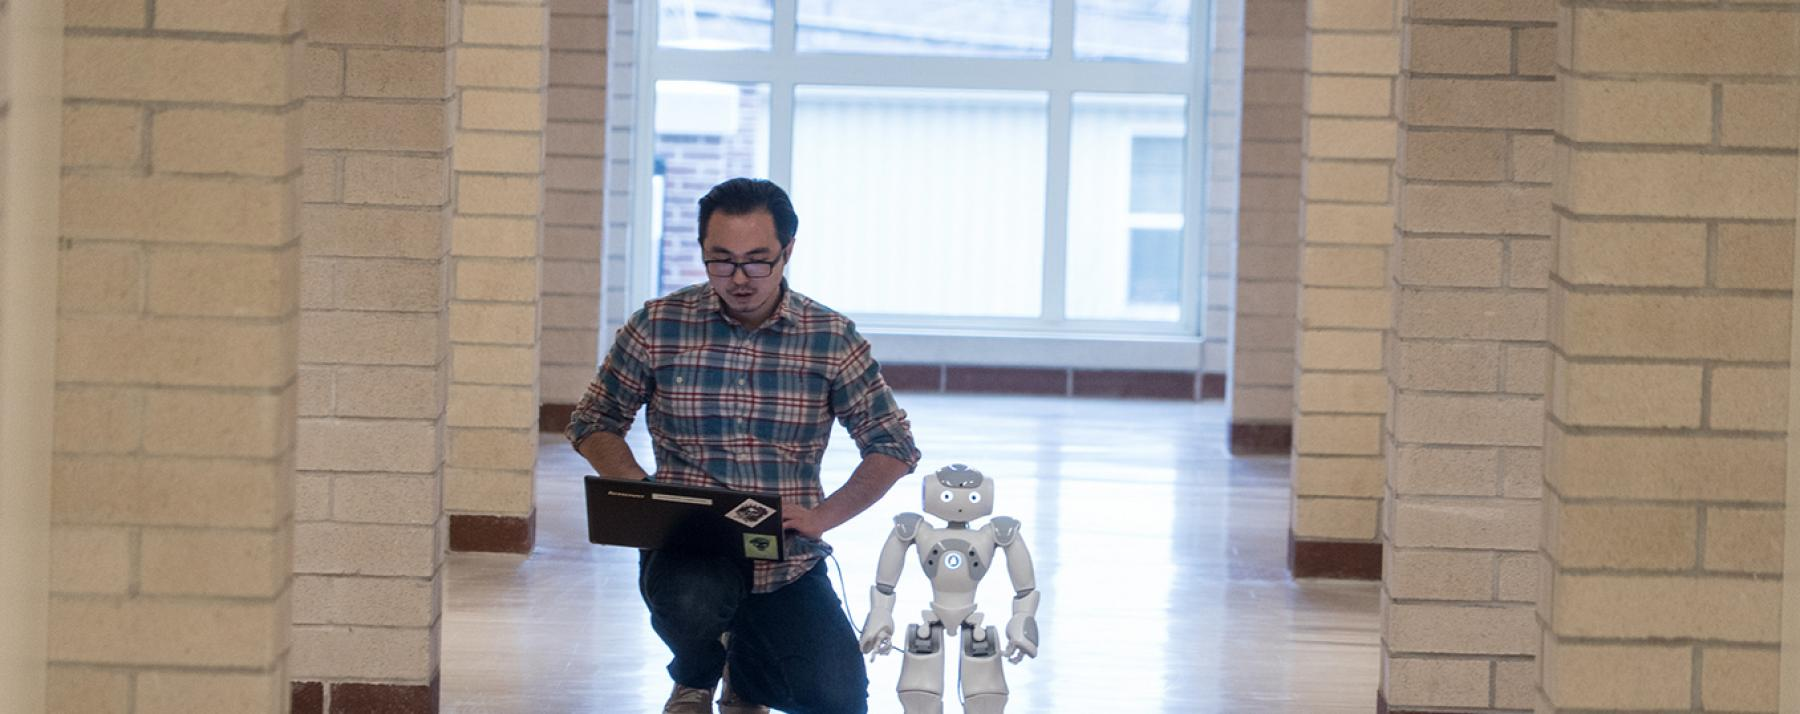 student with robot in hallway